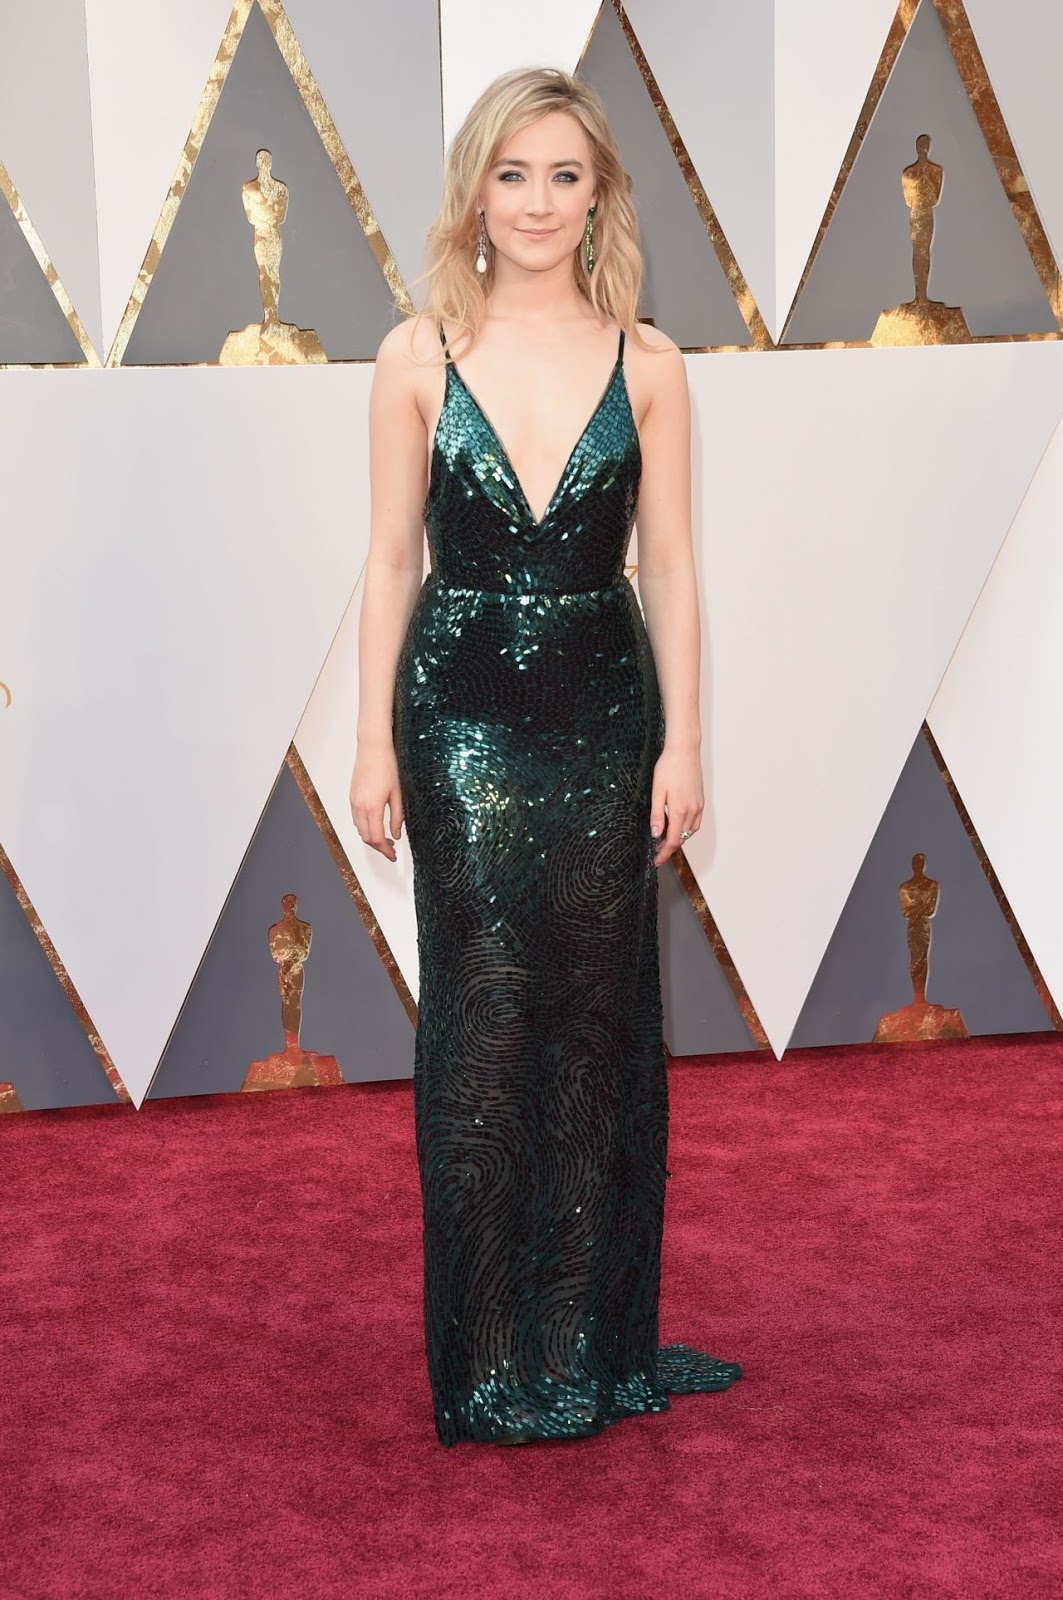 Saoirse Ronan shimmers in green at the Oscars 2016